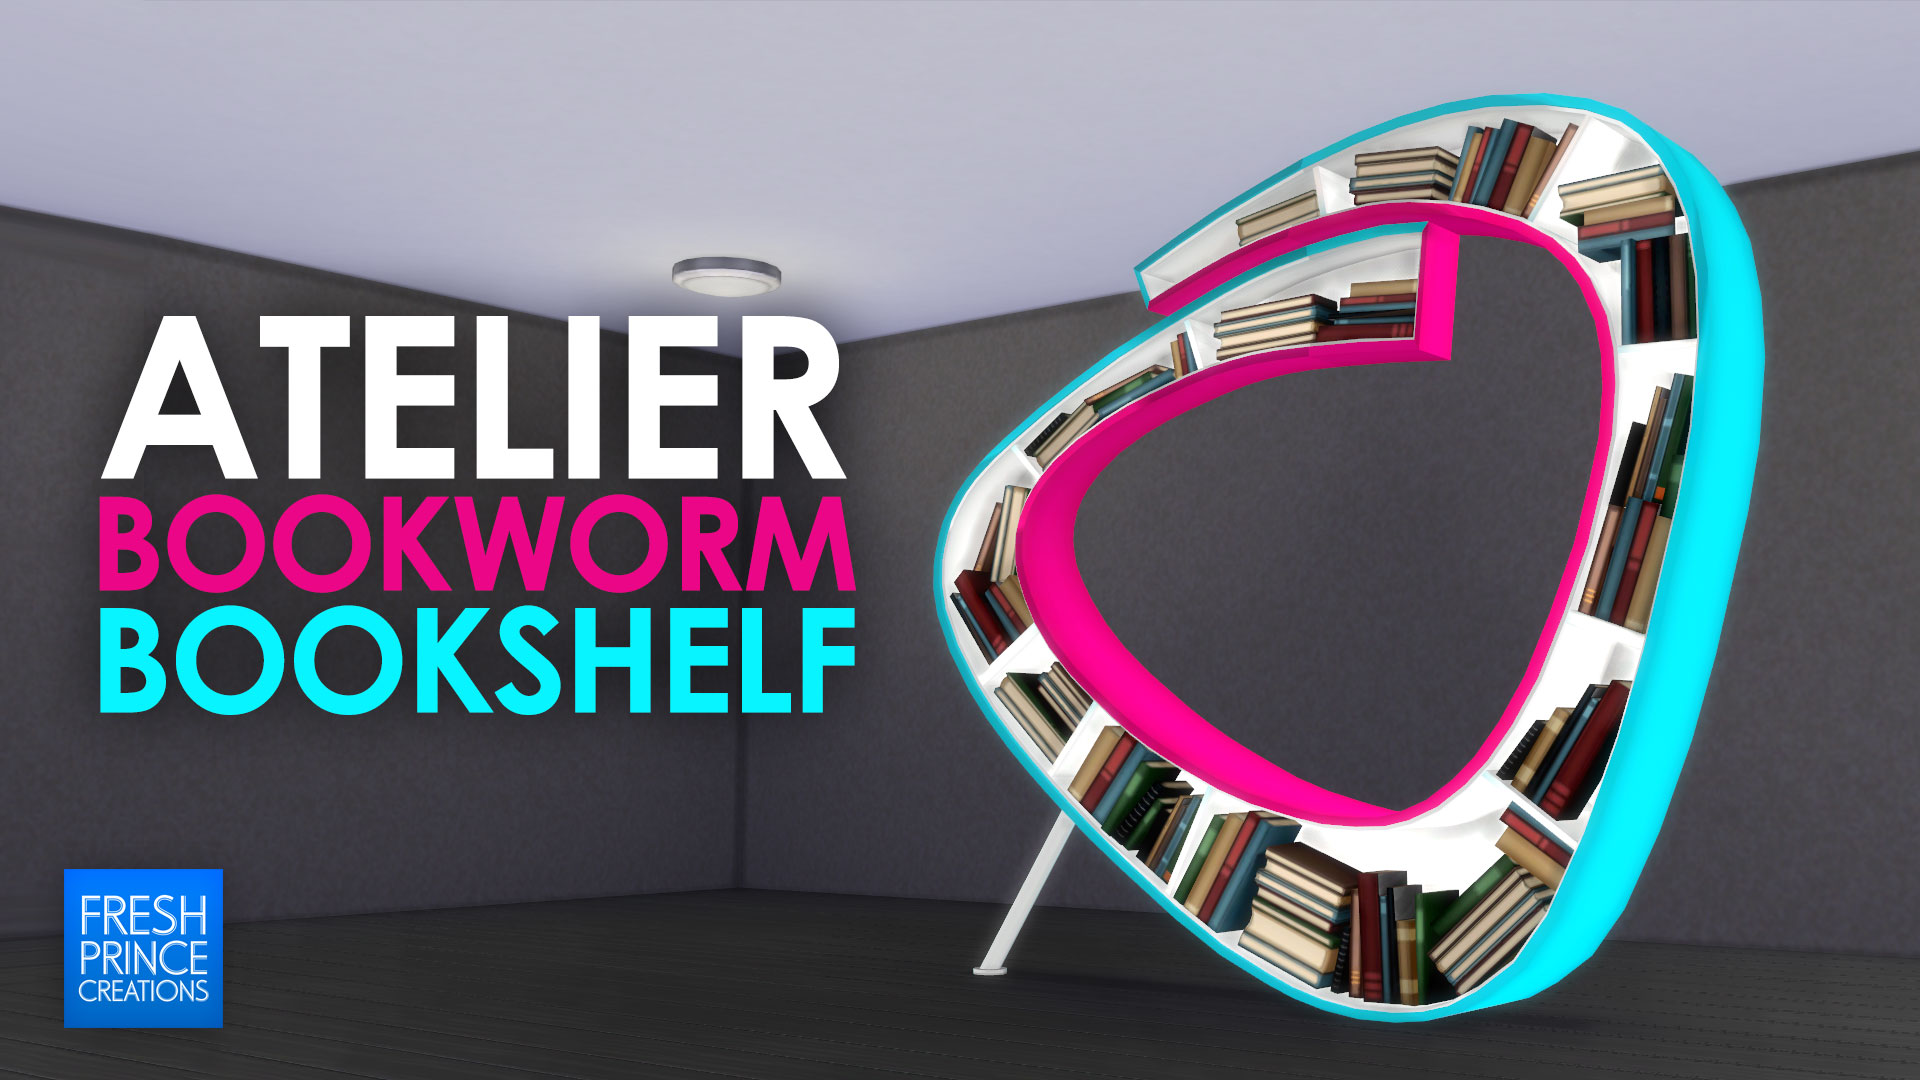 Atelier Bookworm Bookshelf by Fresh-Prince